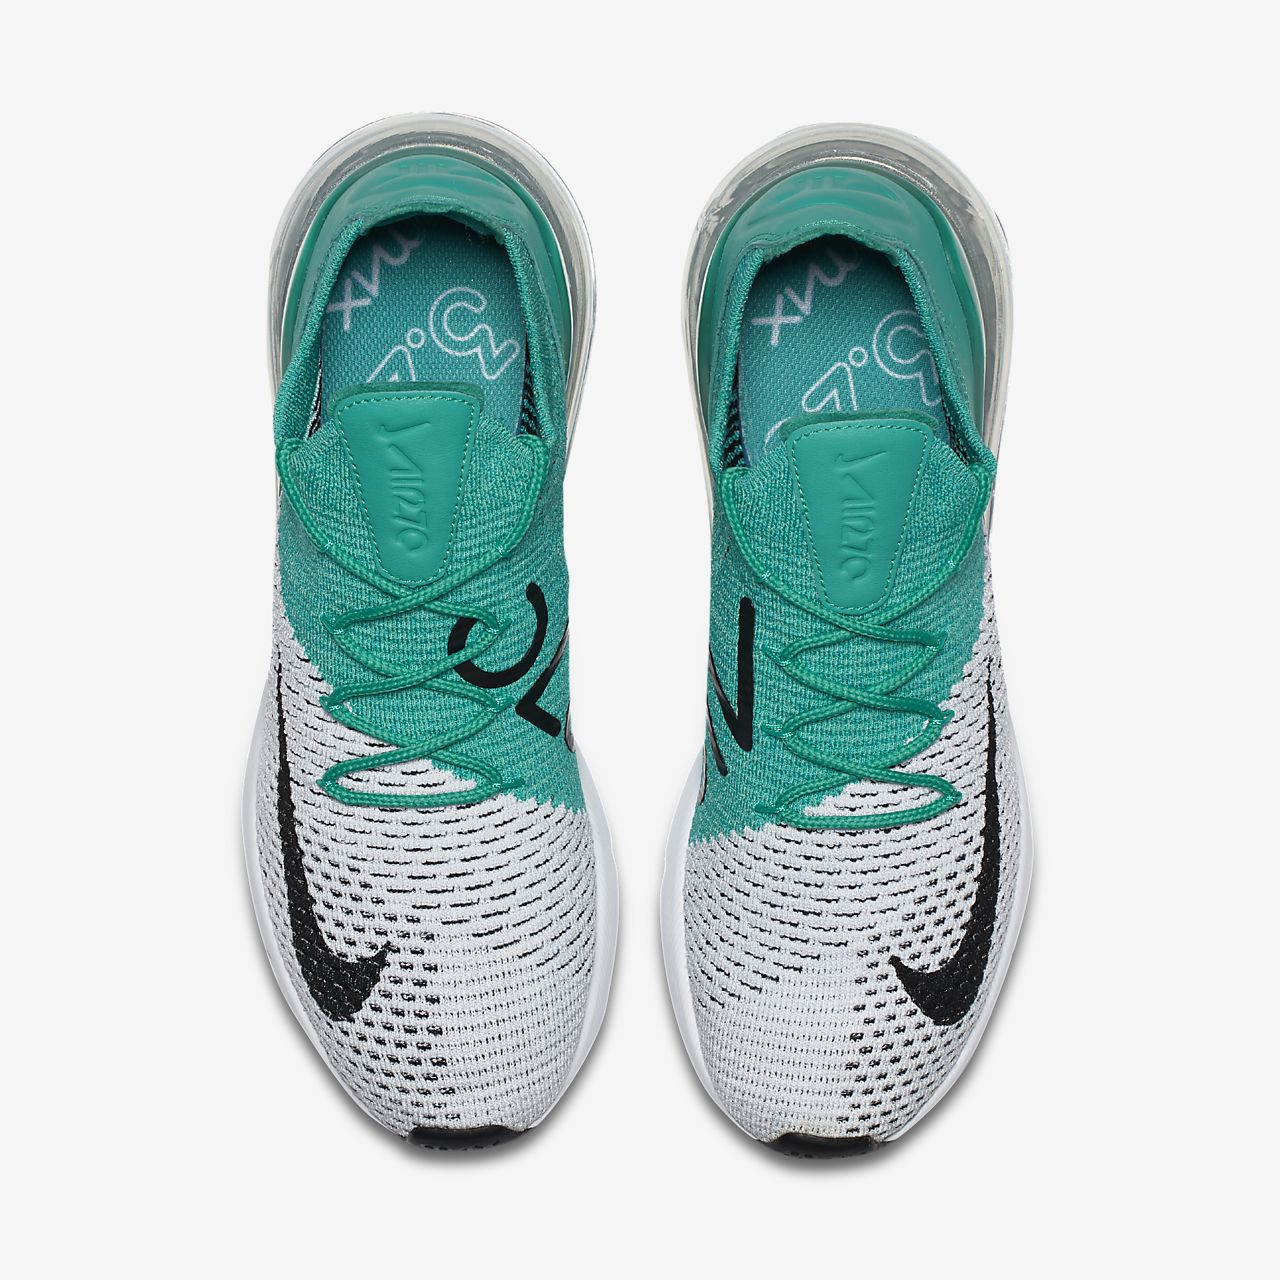 Acquista nike air max 270 flyknit online - OFF40% sconti 4026d5090